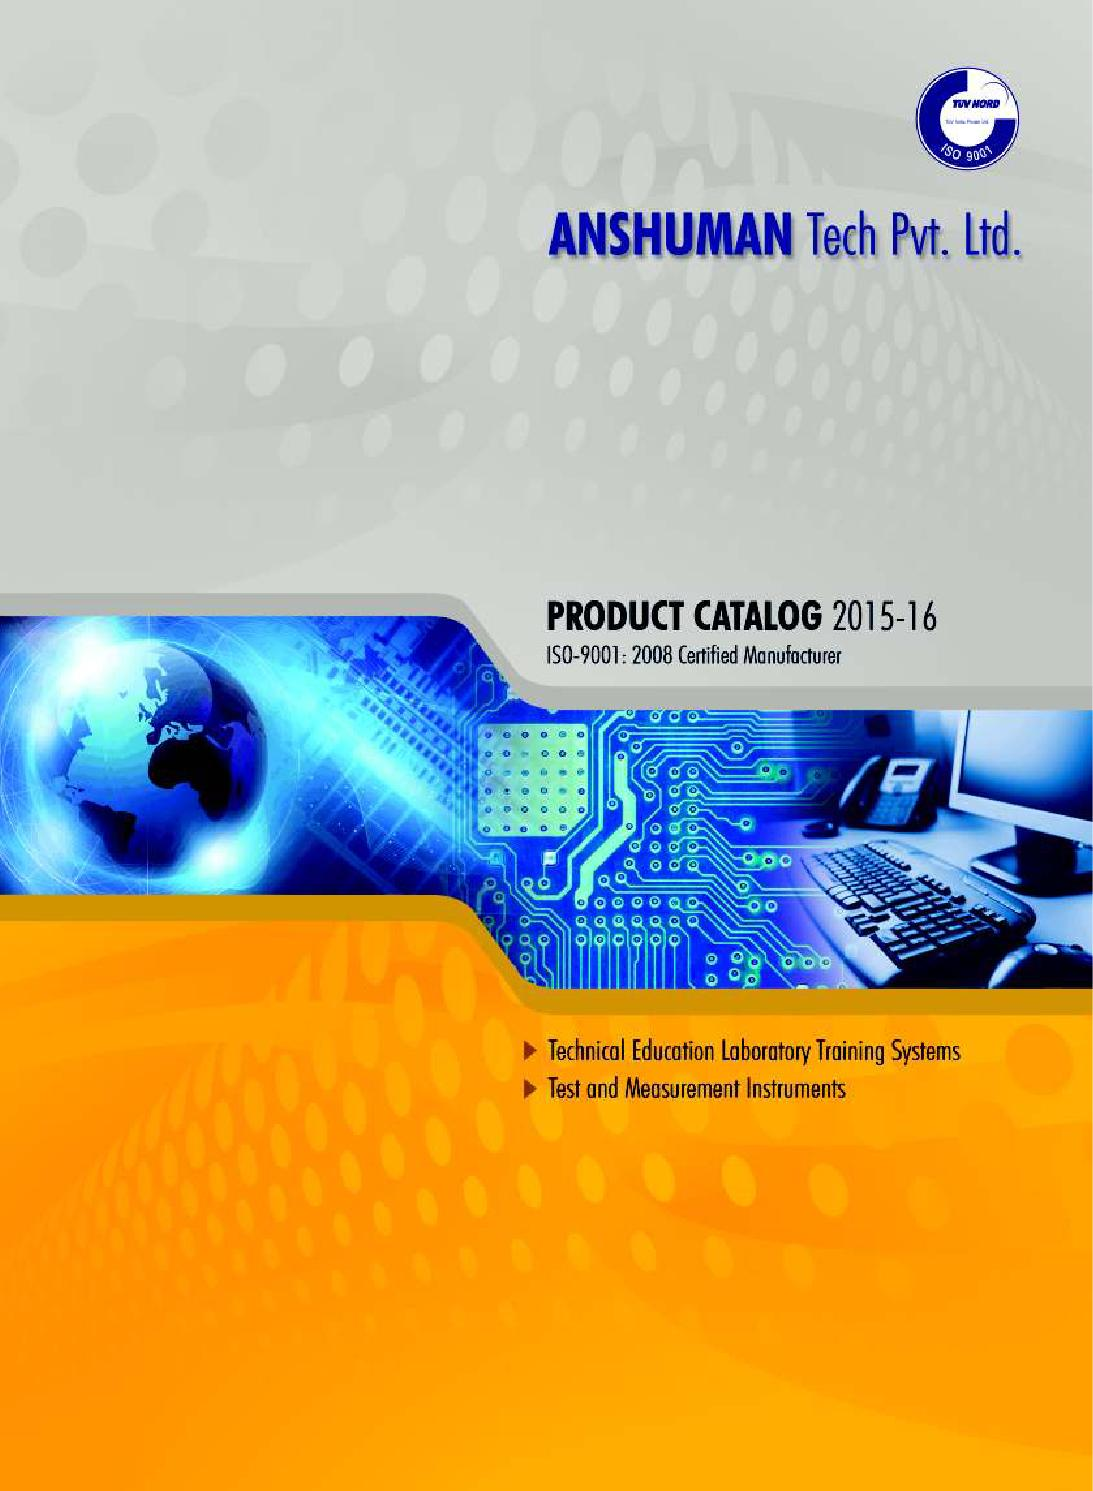 Catlog 2015 2016 Pdf File By Ravi Velnati Issuu Mp3 Player Circuit Diagram 5 Free Electronic Circuits 8085